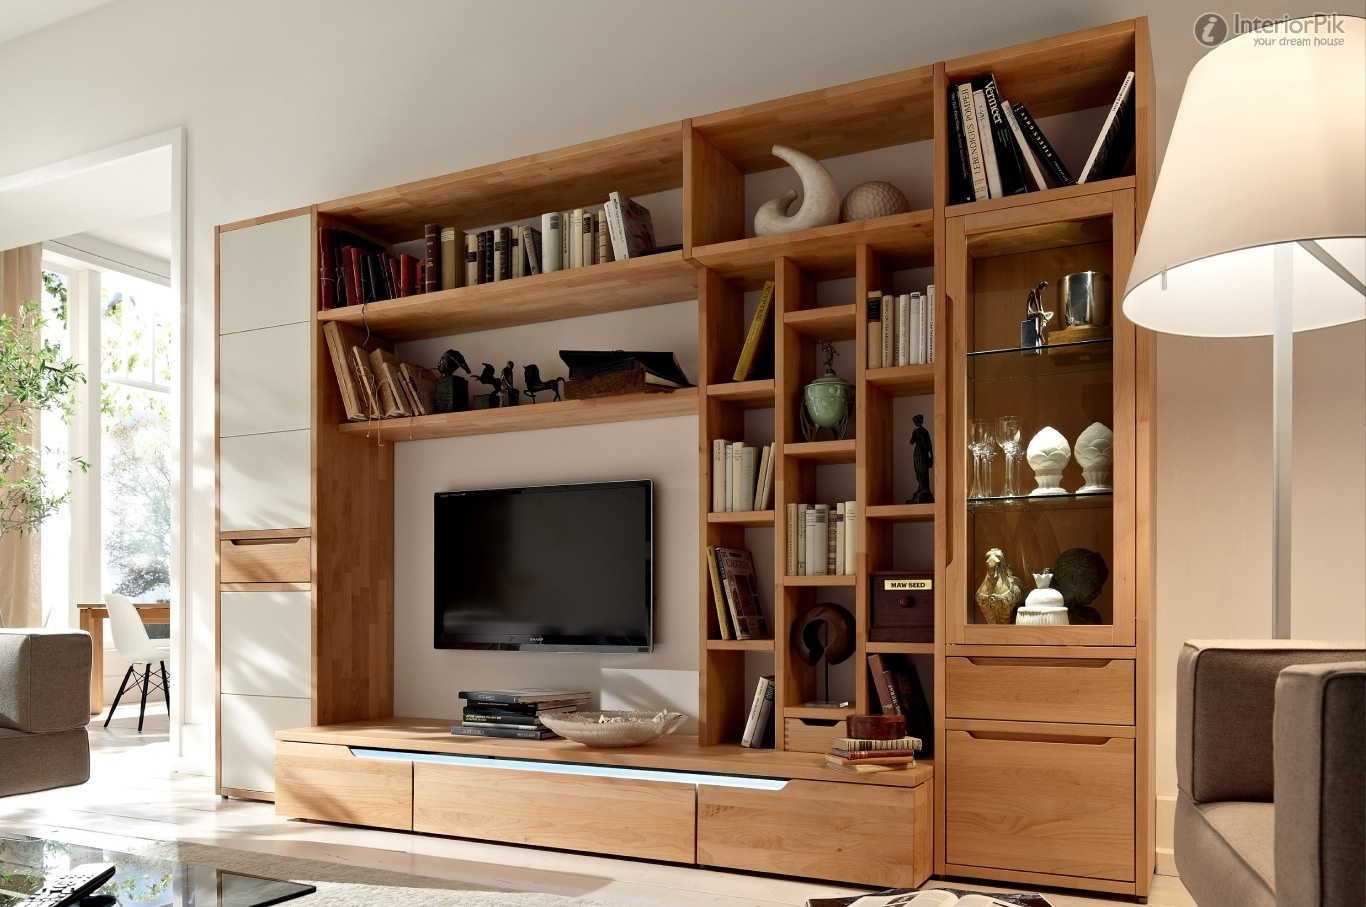 Living Room Cabinetry Pleasing Living Room Furniture Inspiration